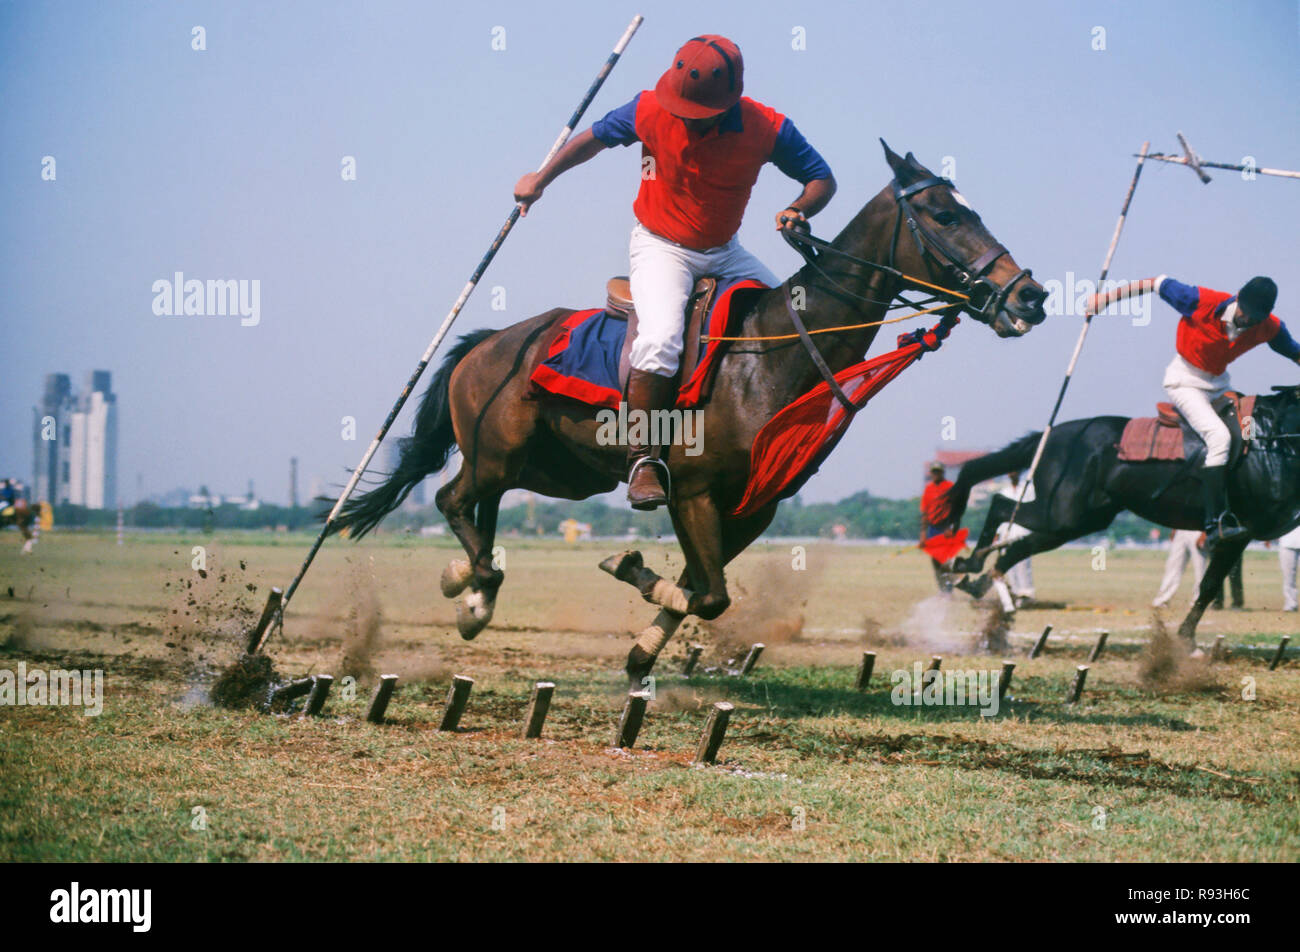 Tent Pegging & Tent Pegging Stock Photo: 229346052 - Alamy